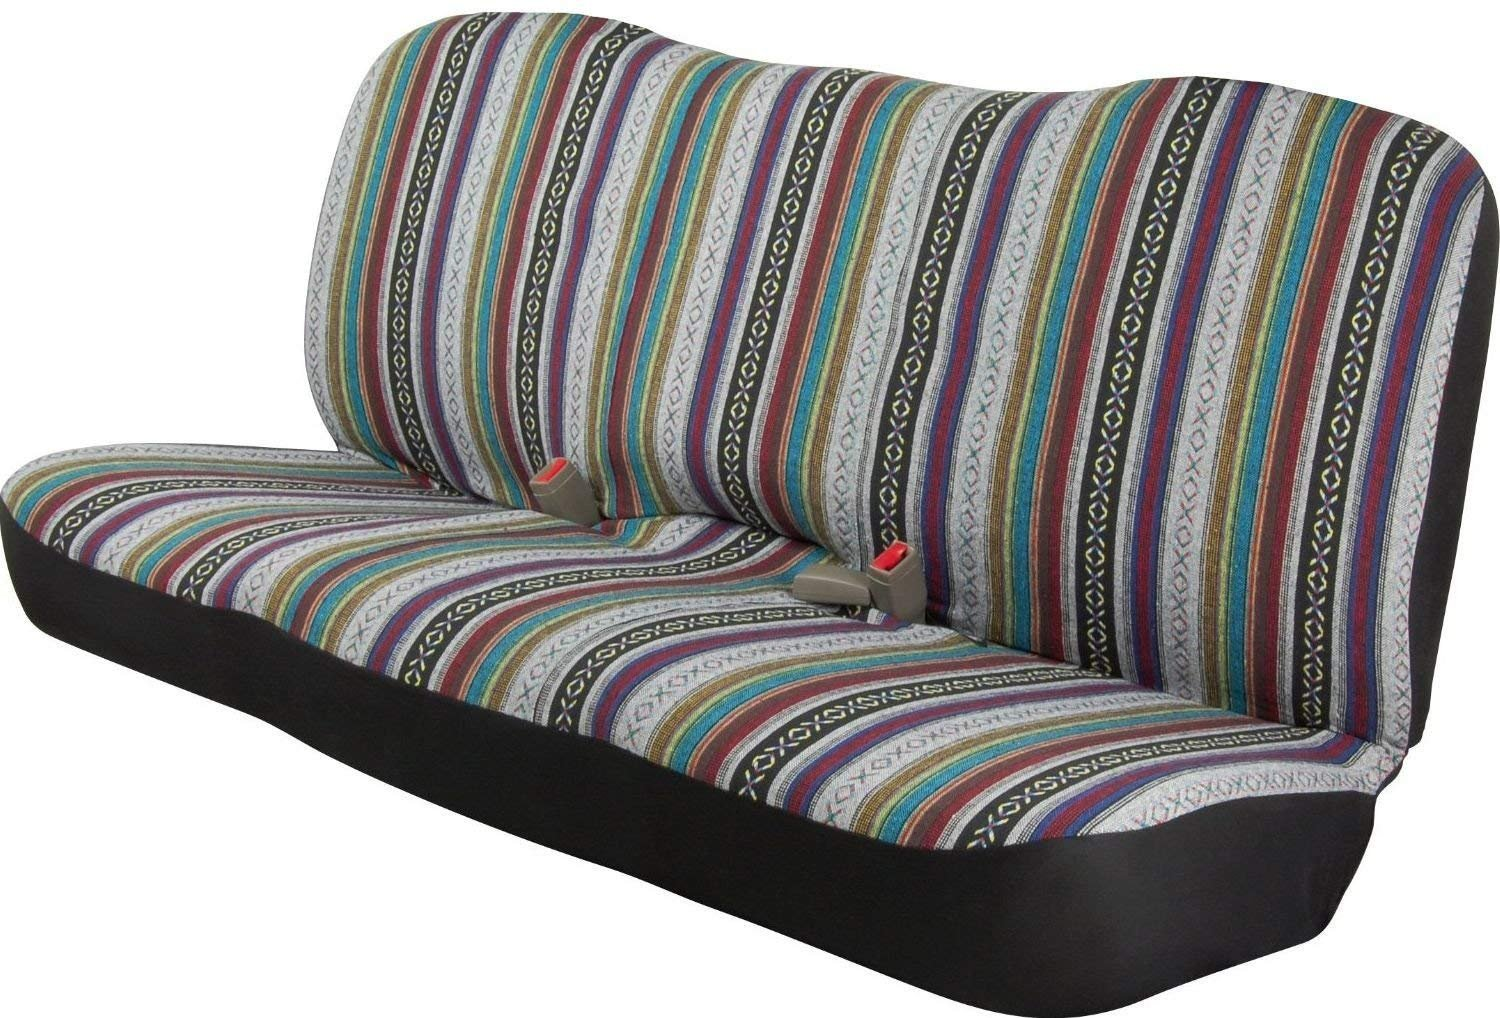 Saddle Blanket Baja Inca Seat Cover Bench Classic For